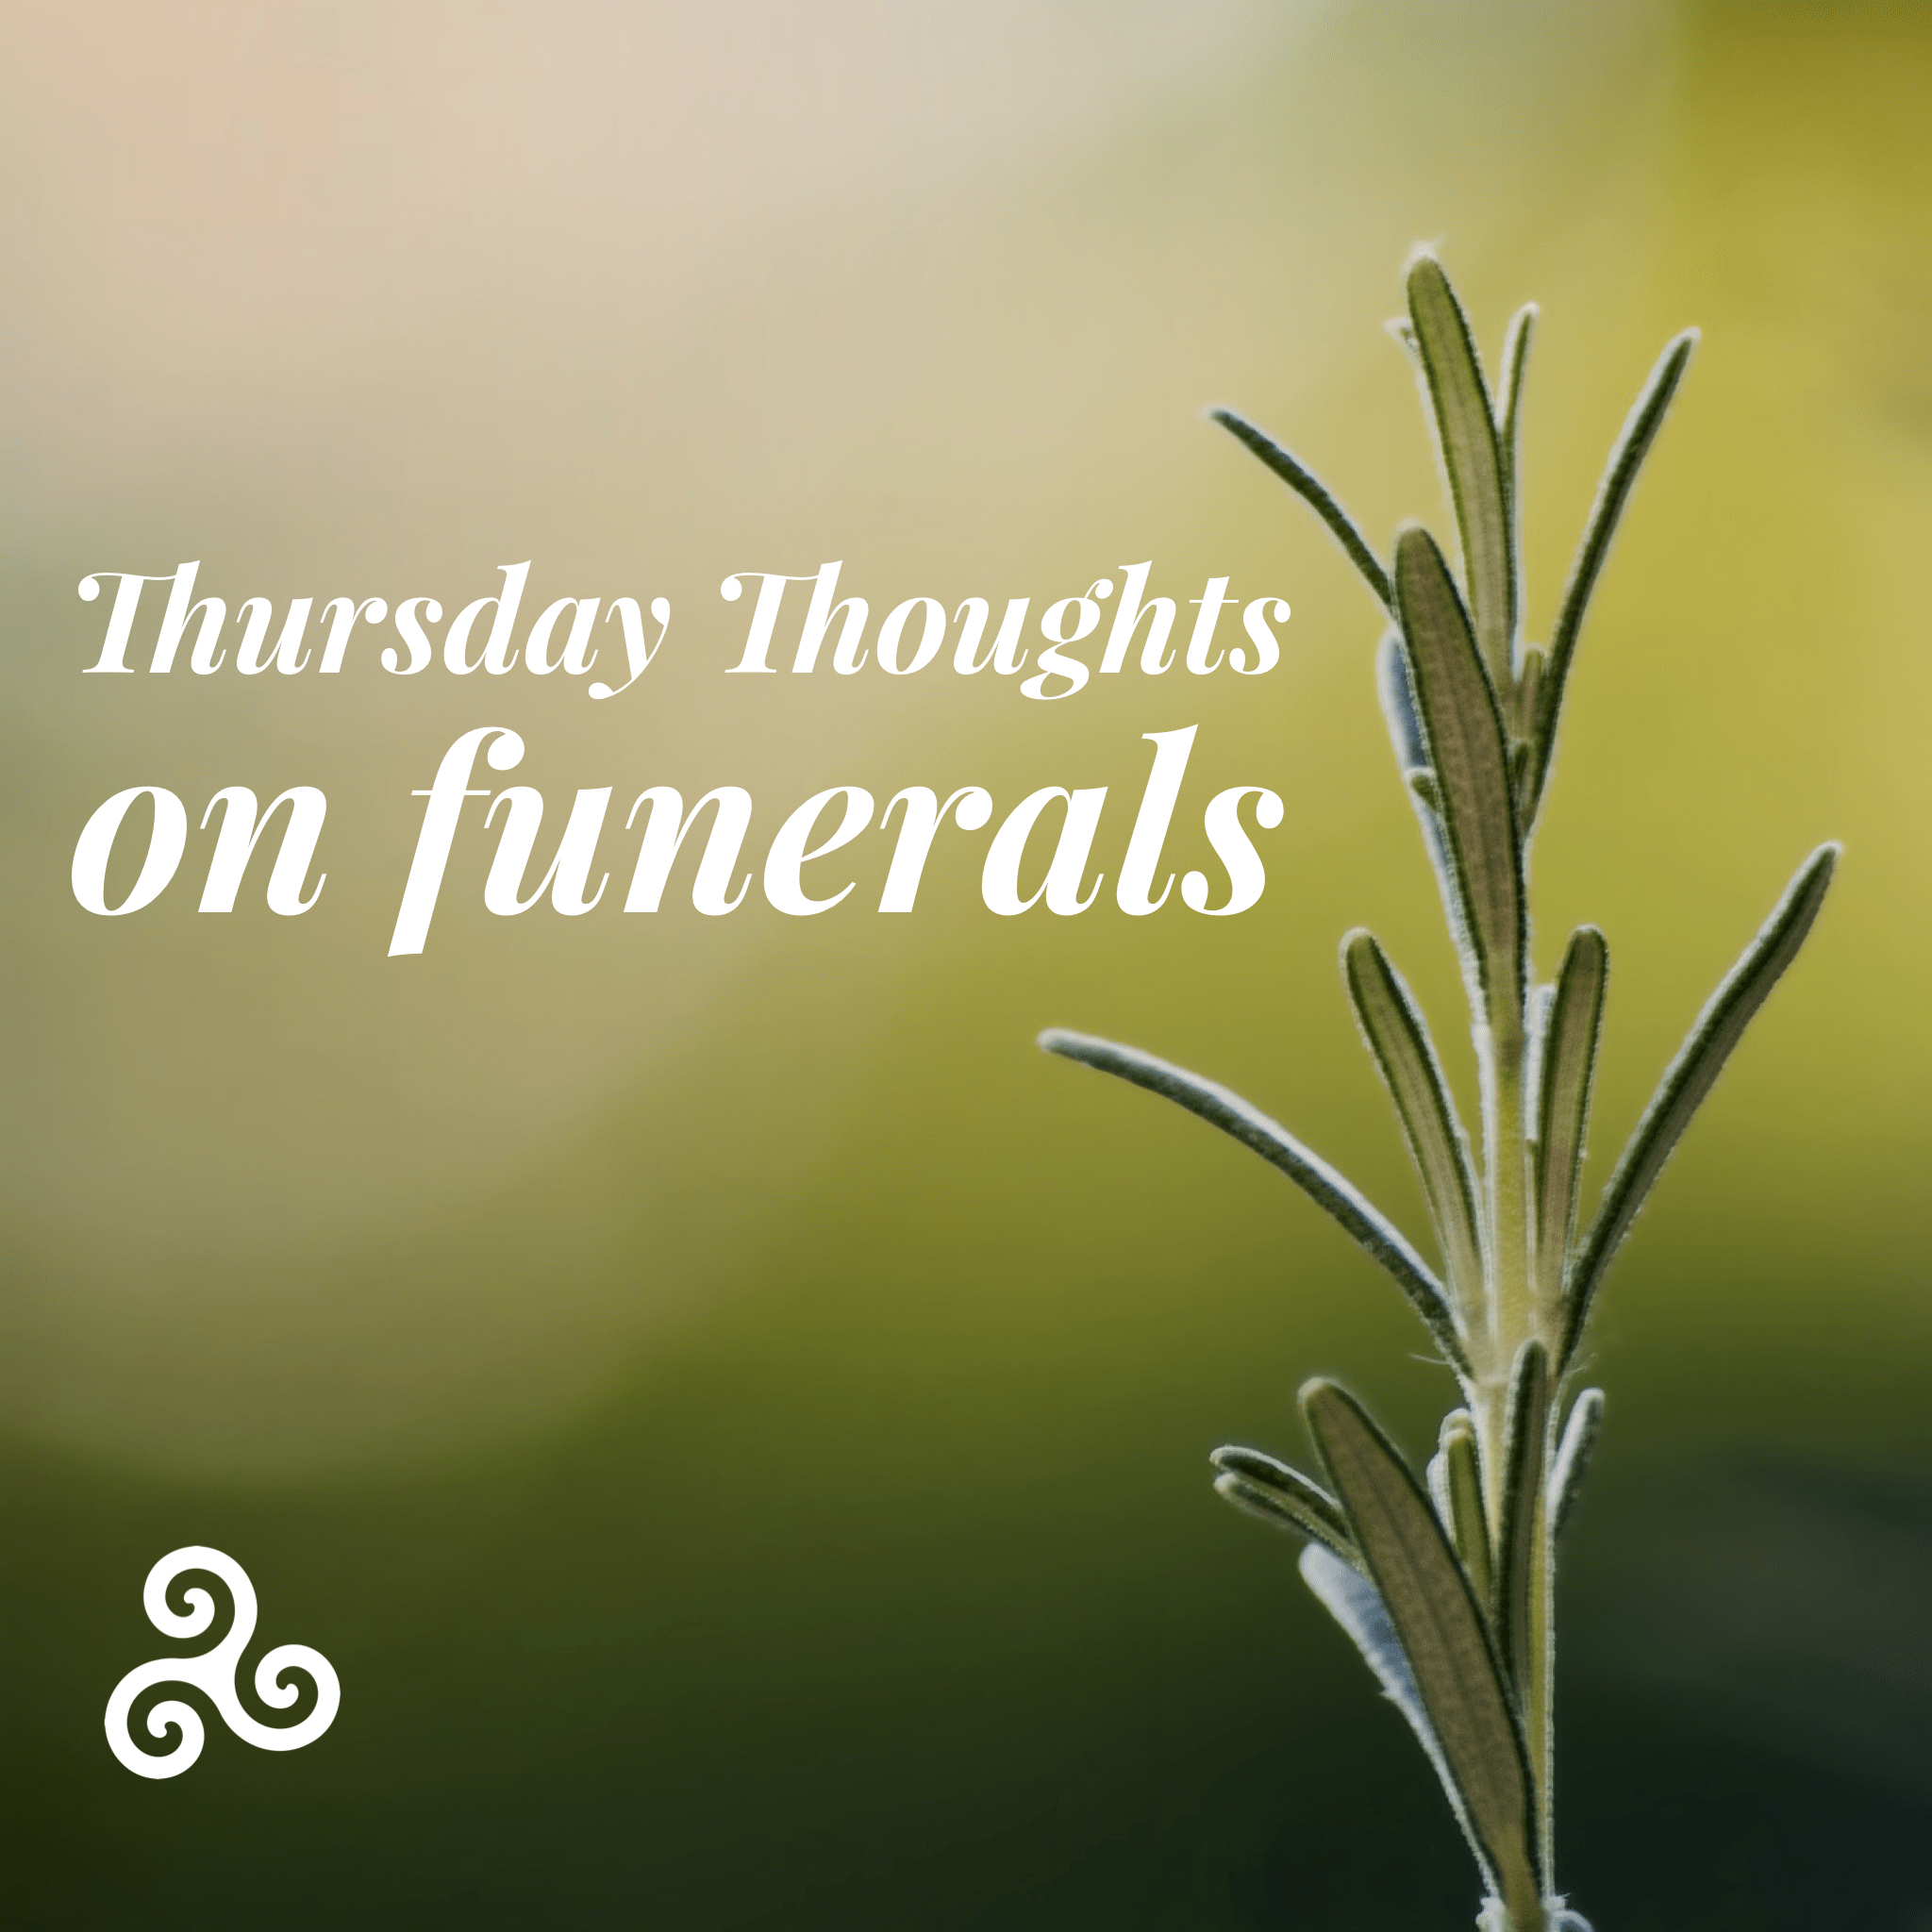 Thursday Thoughts… on funerals